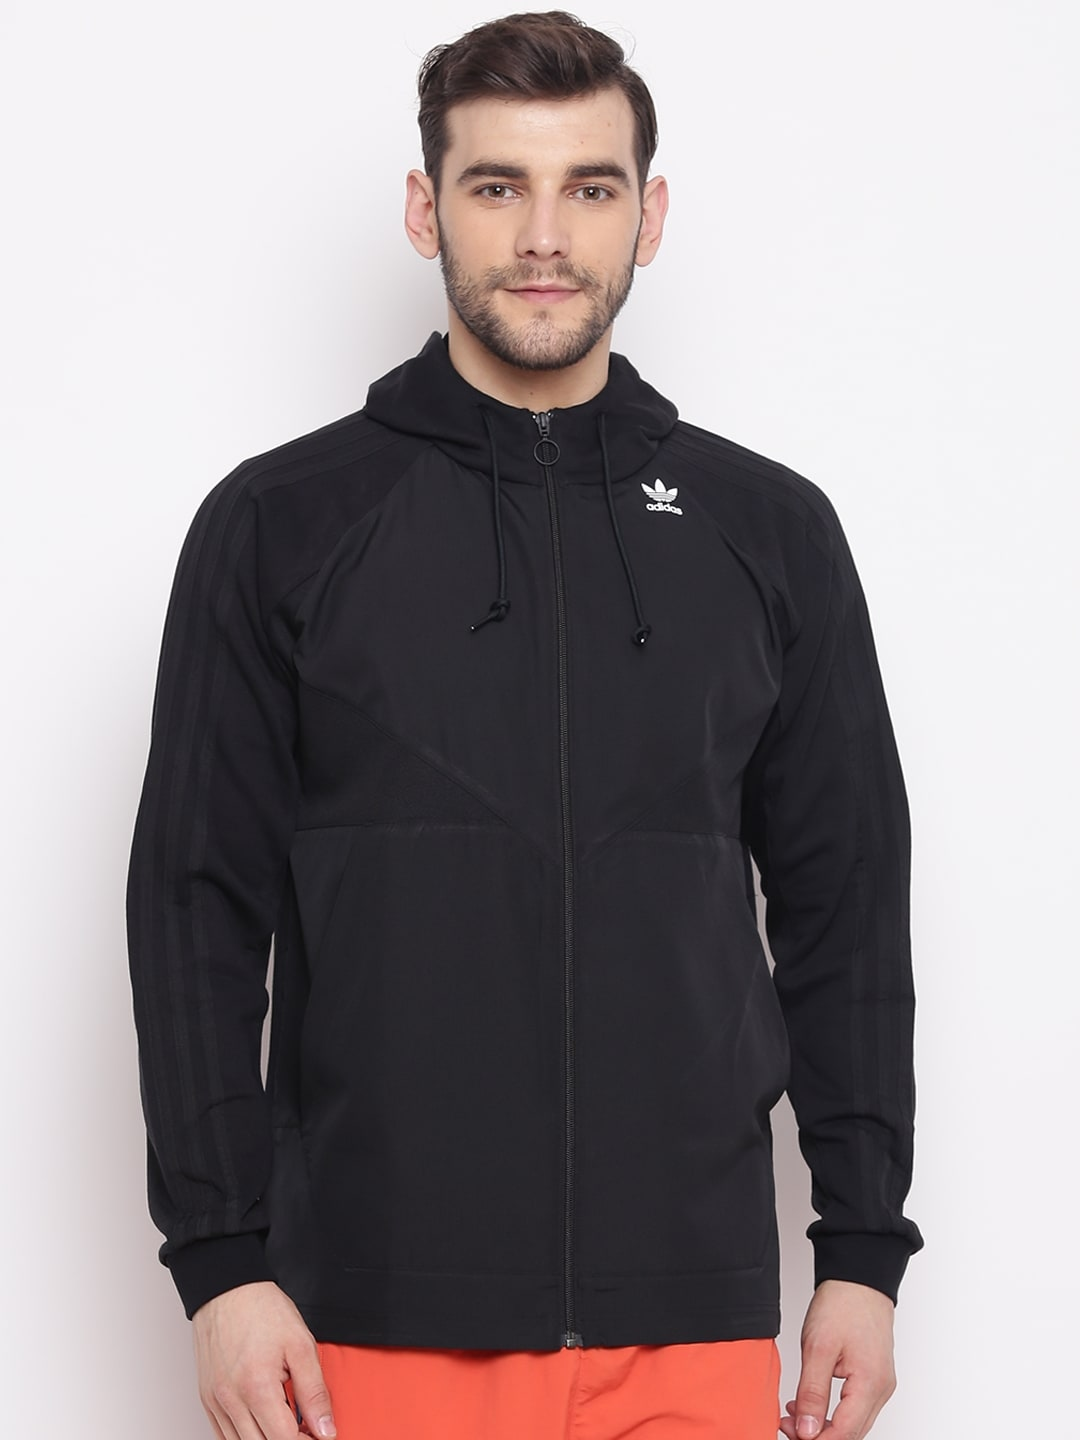 d4cf6d062ec Adidas Jacket - Buy Adidas Jackets for Men